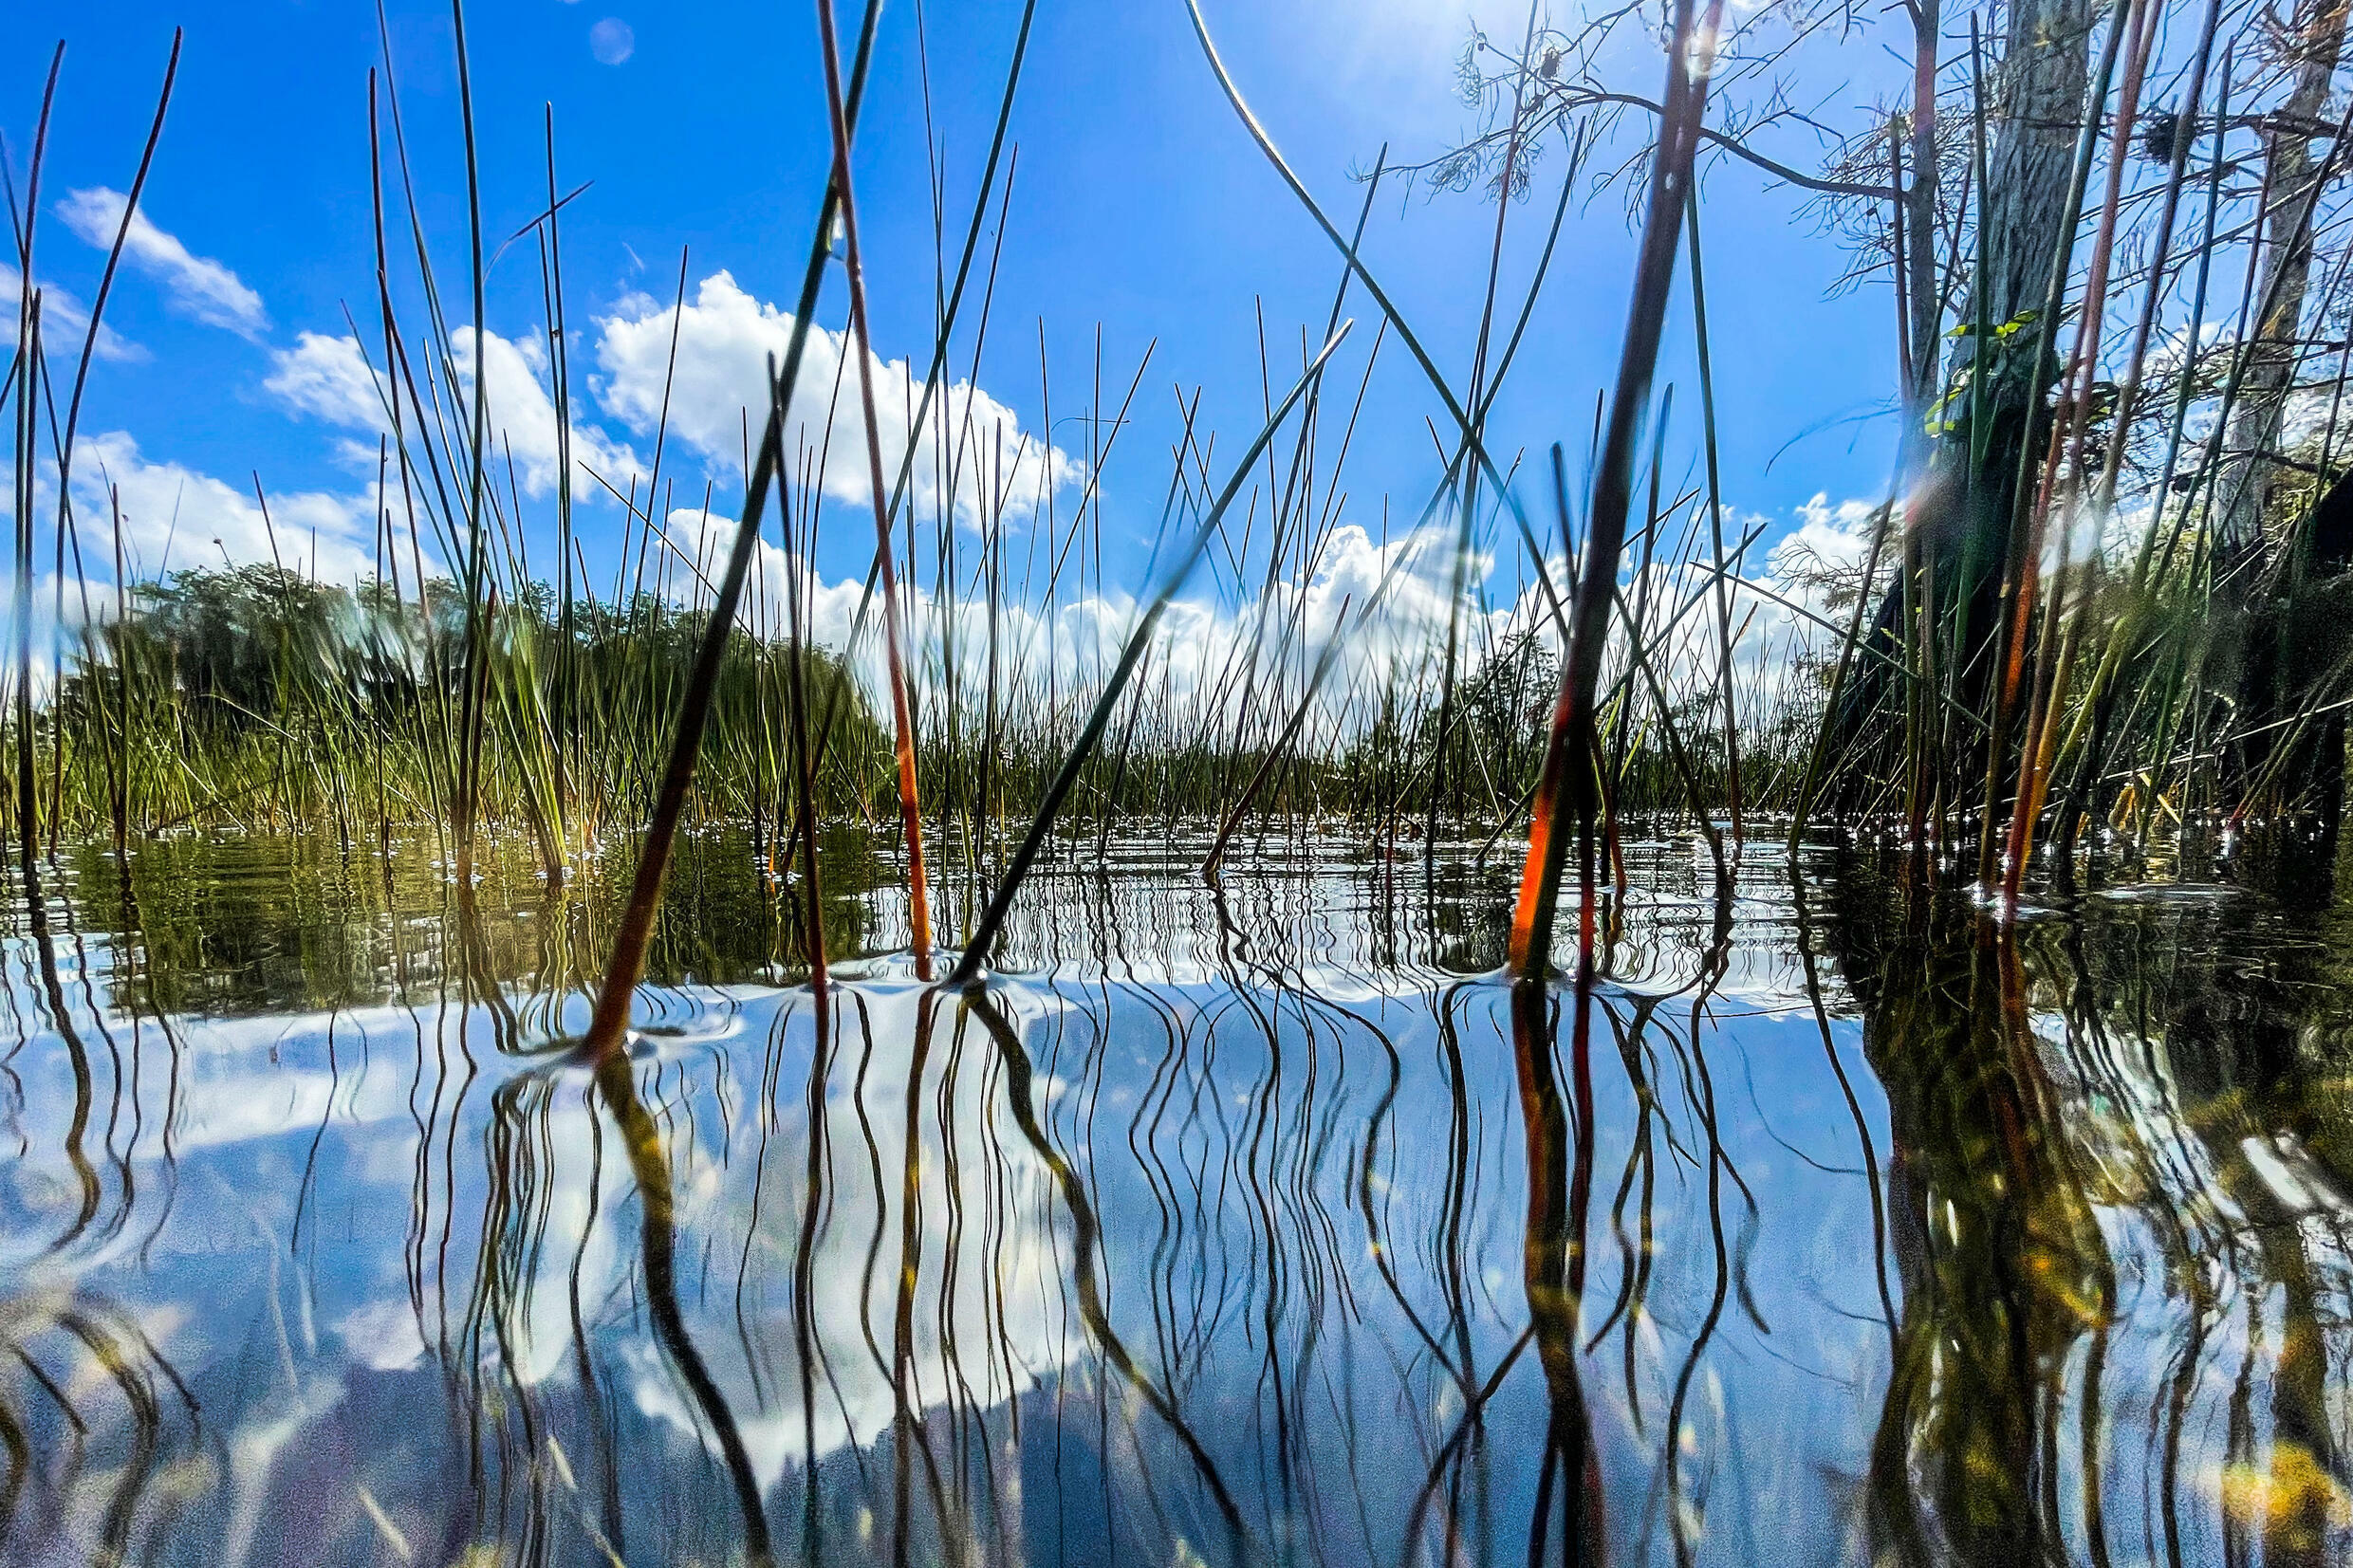 Aquatic vegetation grows above the water in Everglades National Park, Florida on September 30, 2021